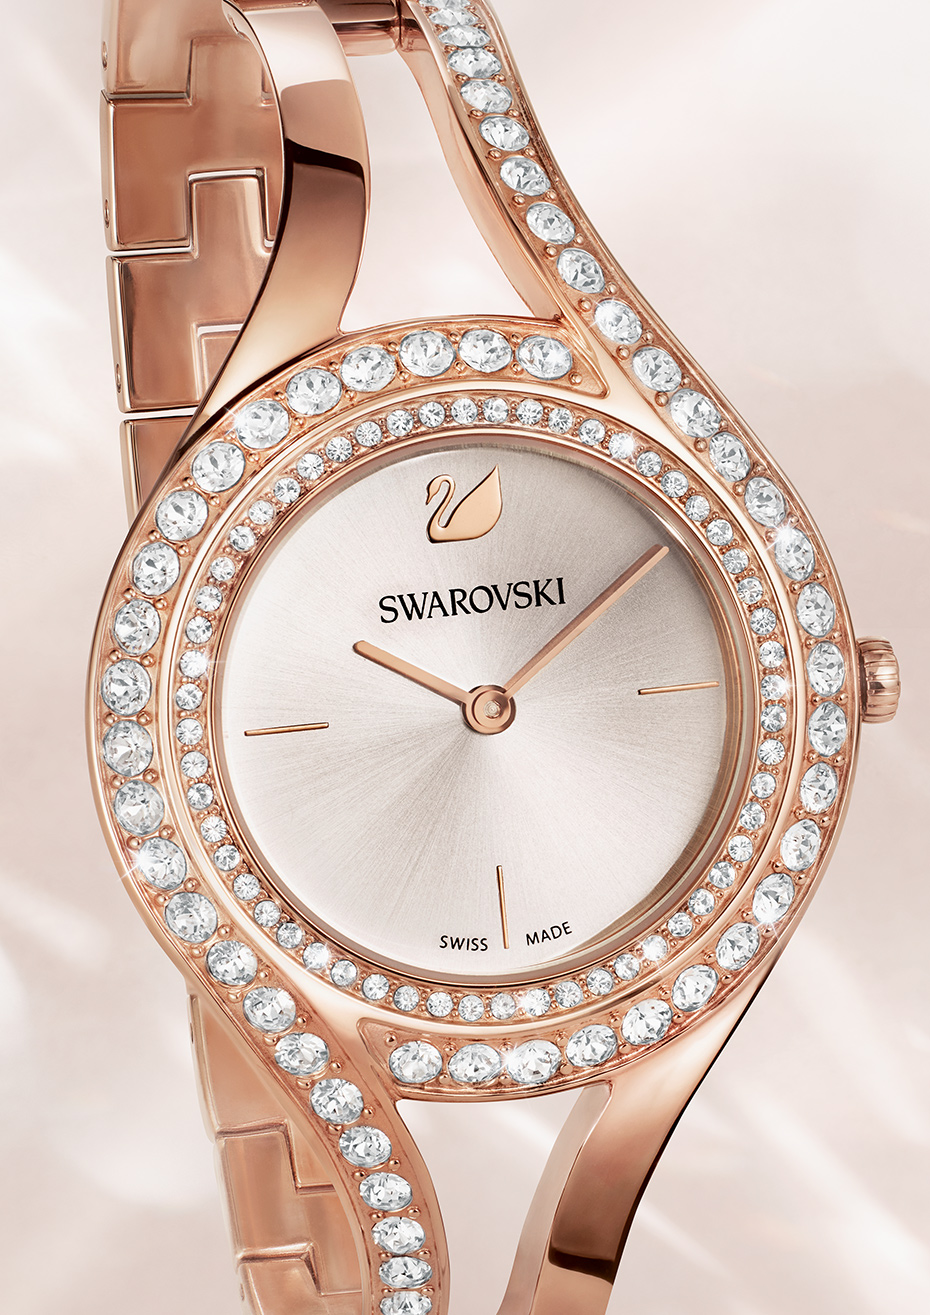 Swarovski Jewellery & Watches